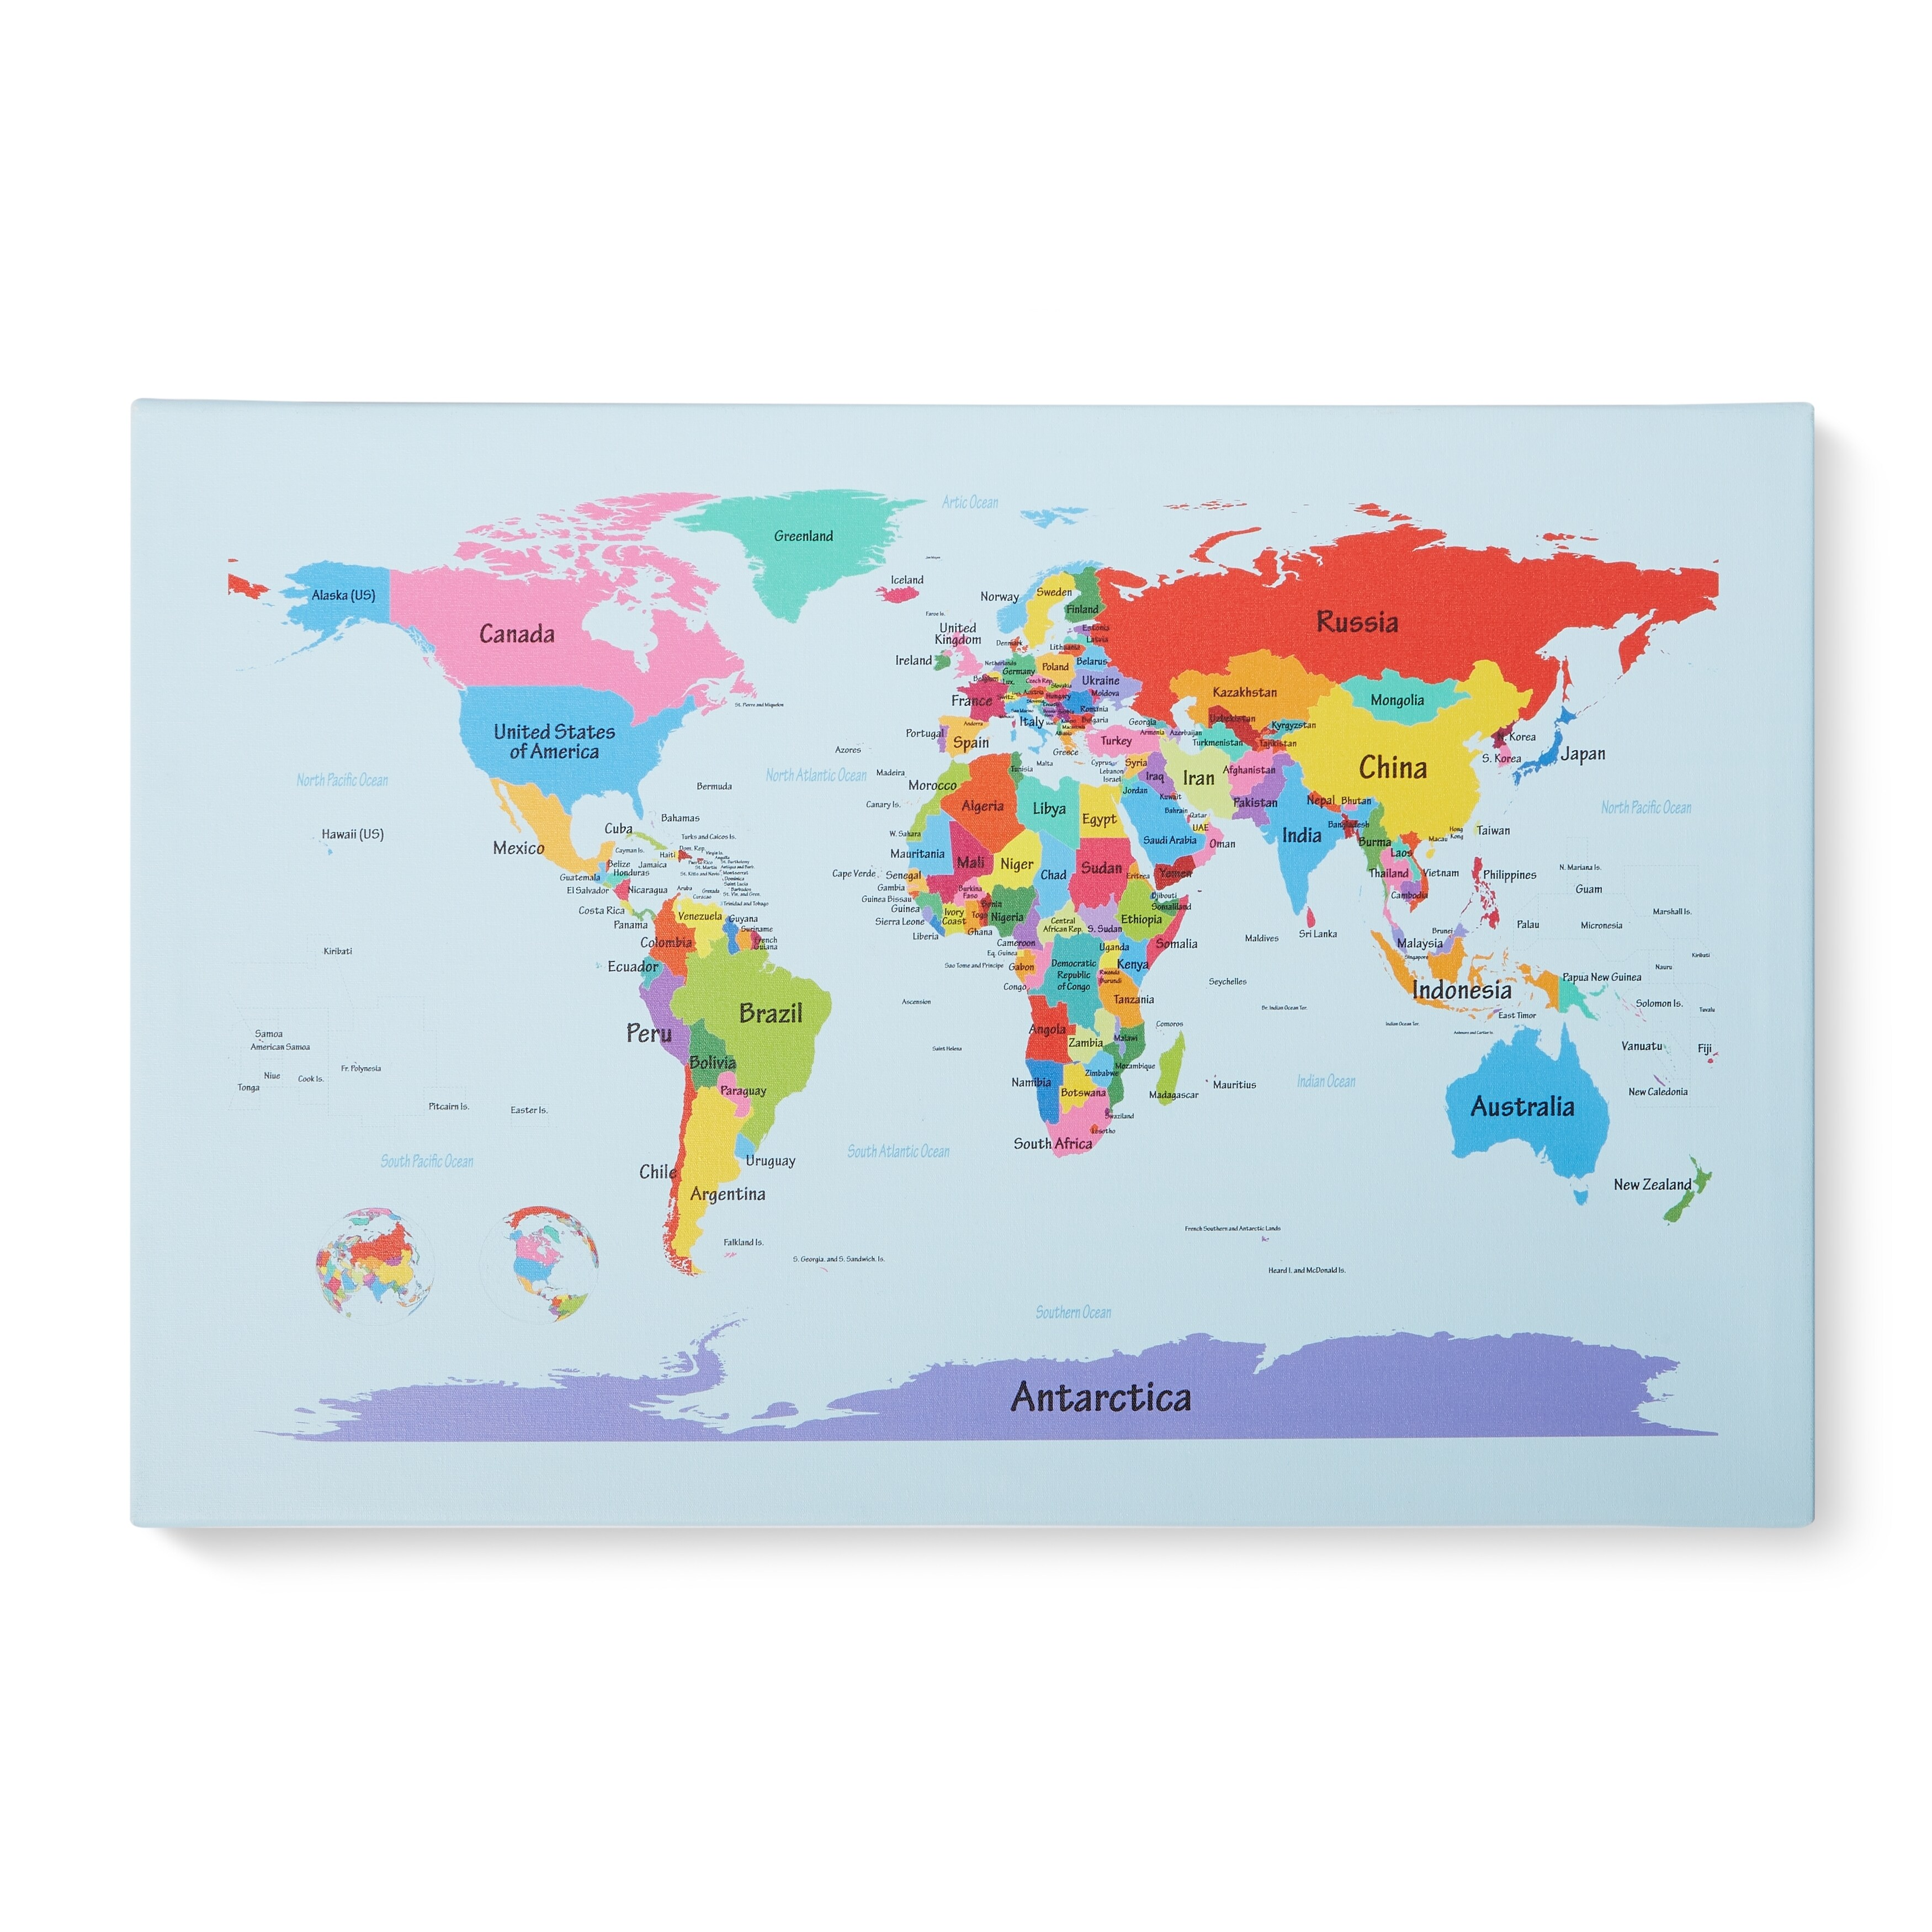 Childrens multi colored world map canvas art multi free childrens multi colored world map canvas art multi free shipping today overstock 15467367 gumiabroncs Images